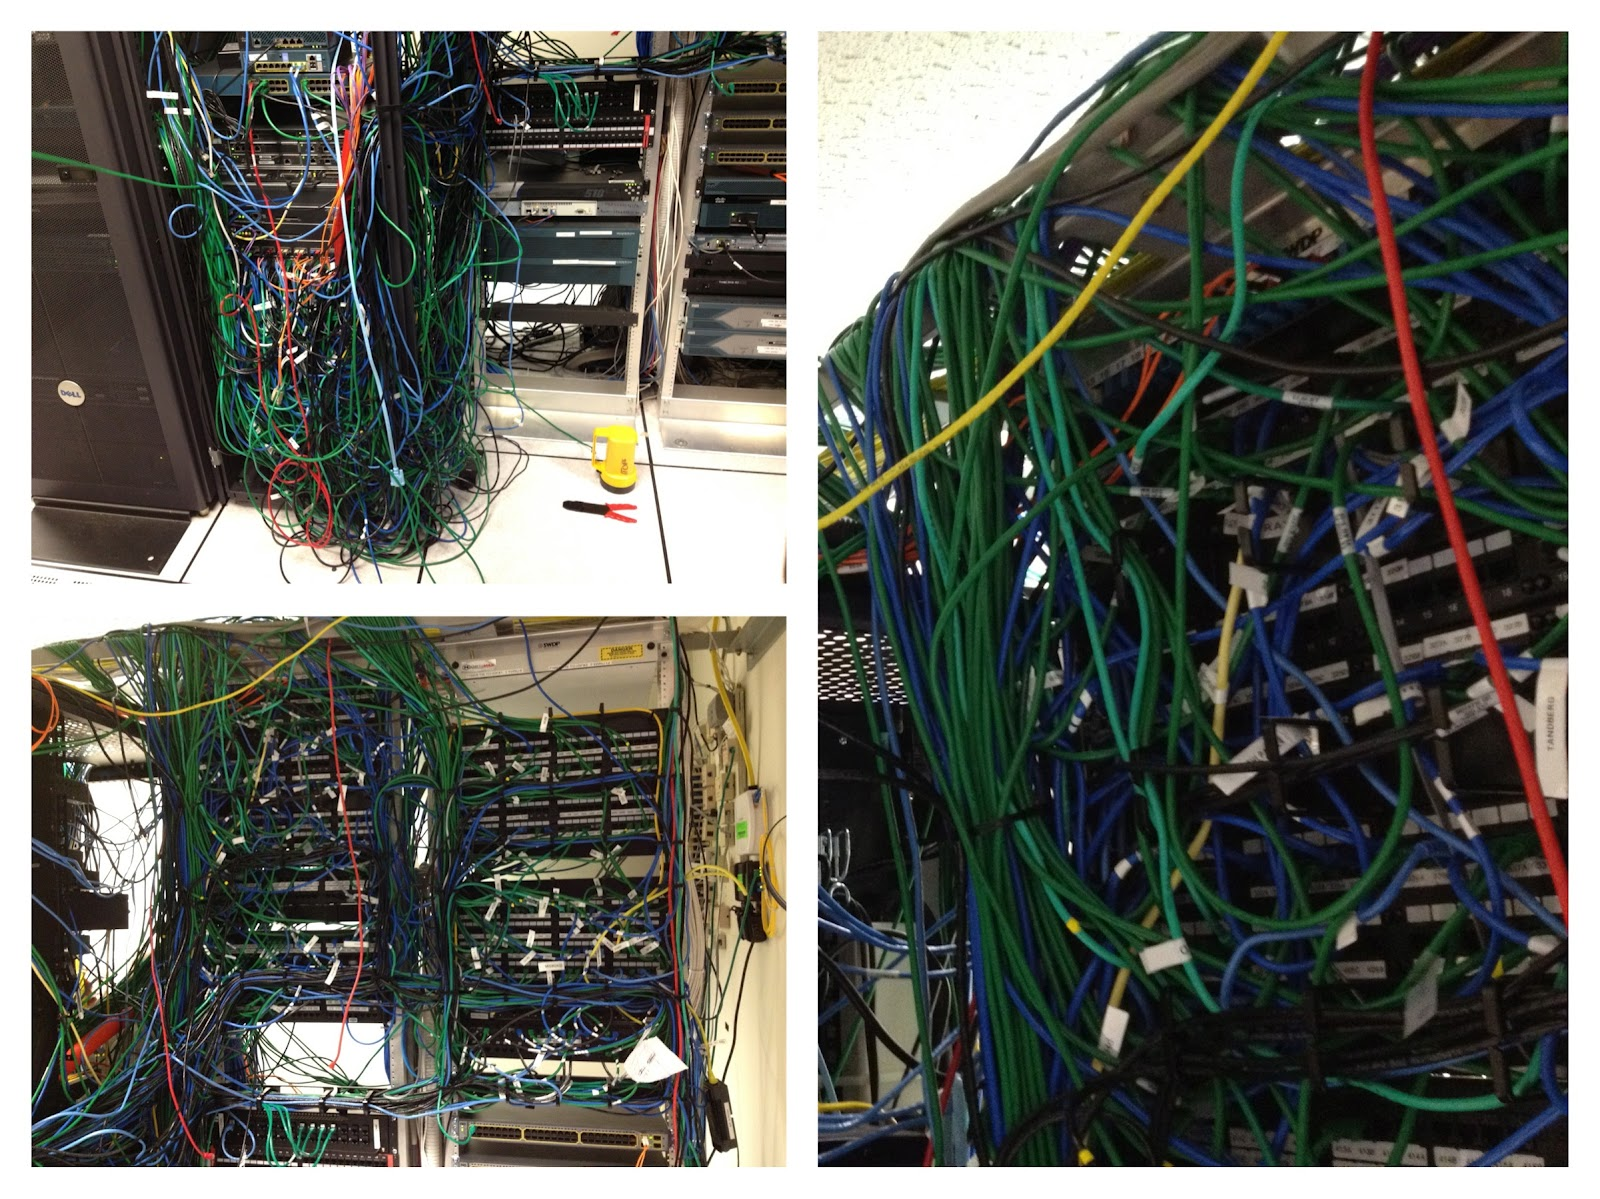 Don't give up on your poor cabling jobs